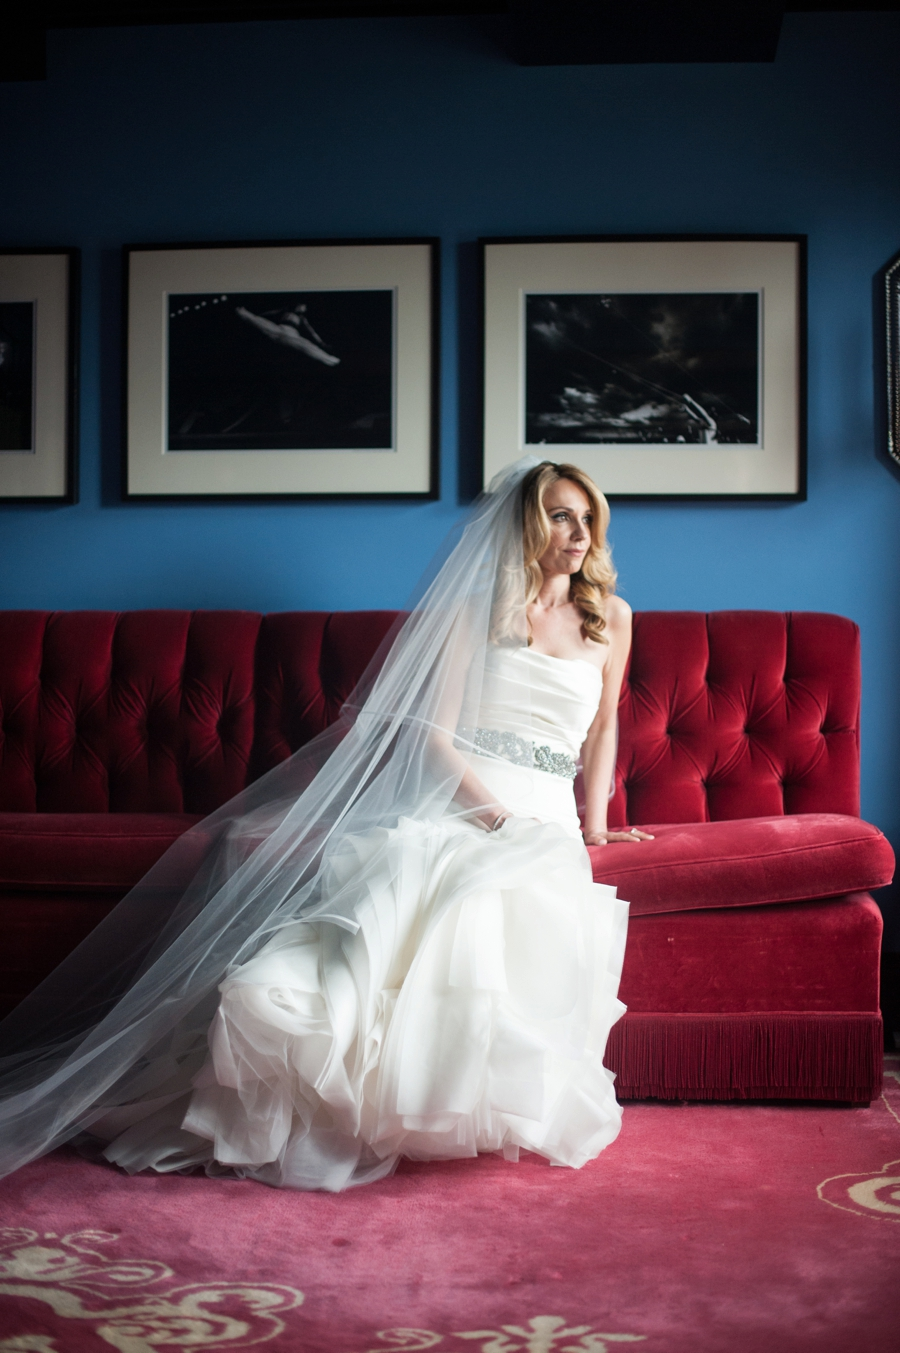 Gramercy_Park_Hotel_NYC_Wedding_MC_0022.jpg